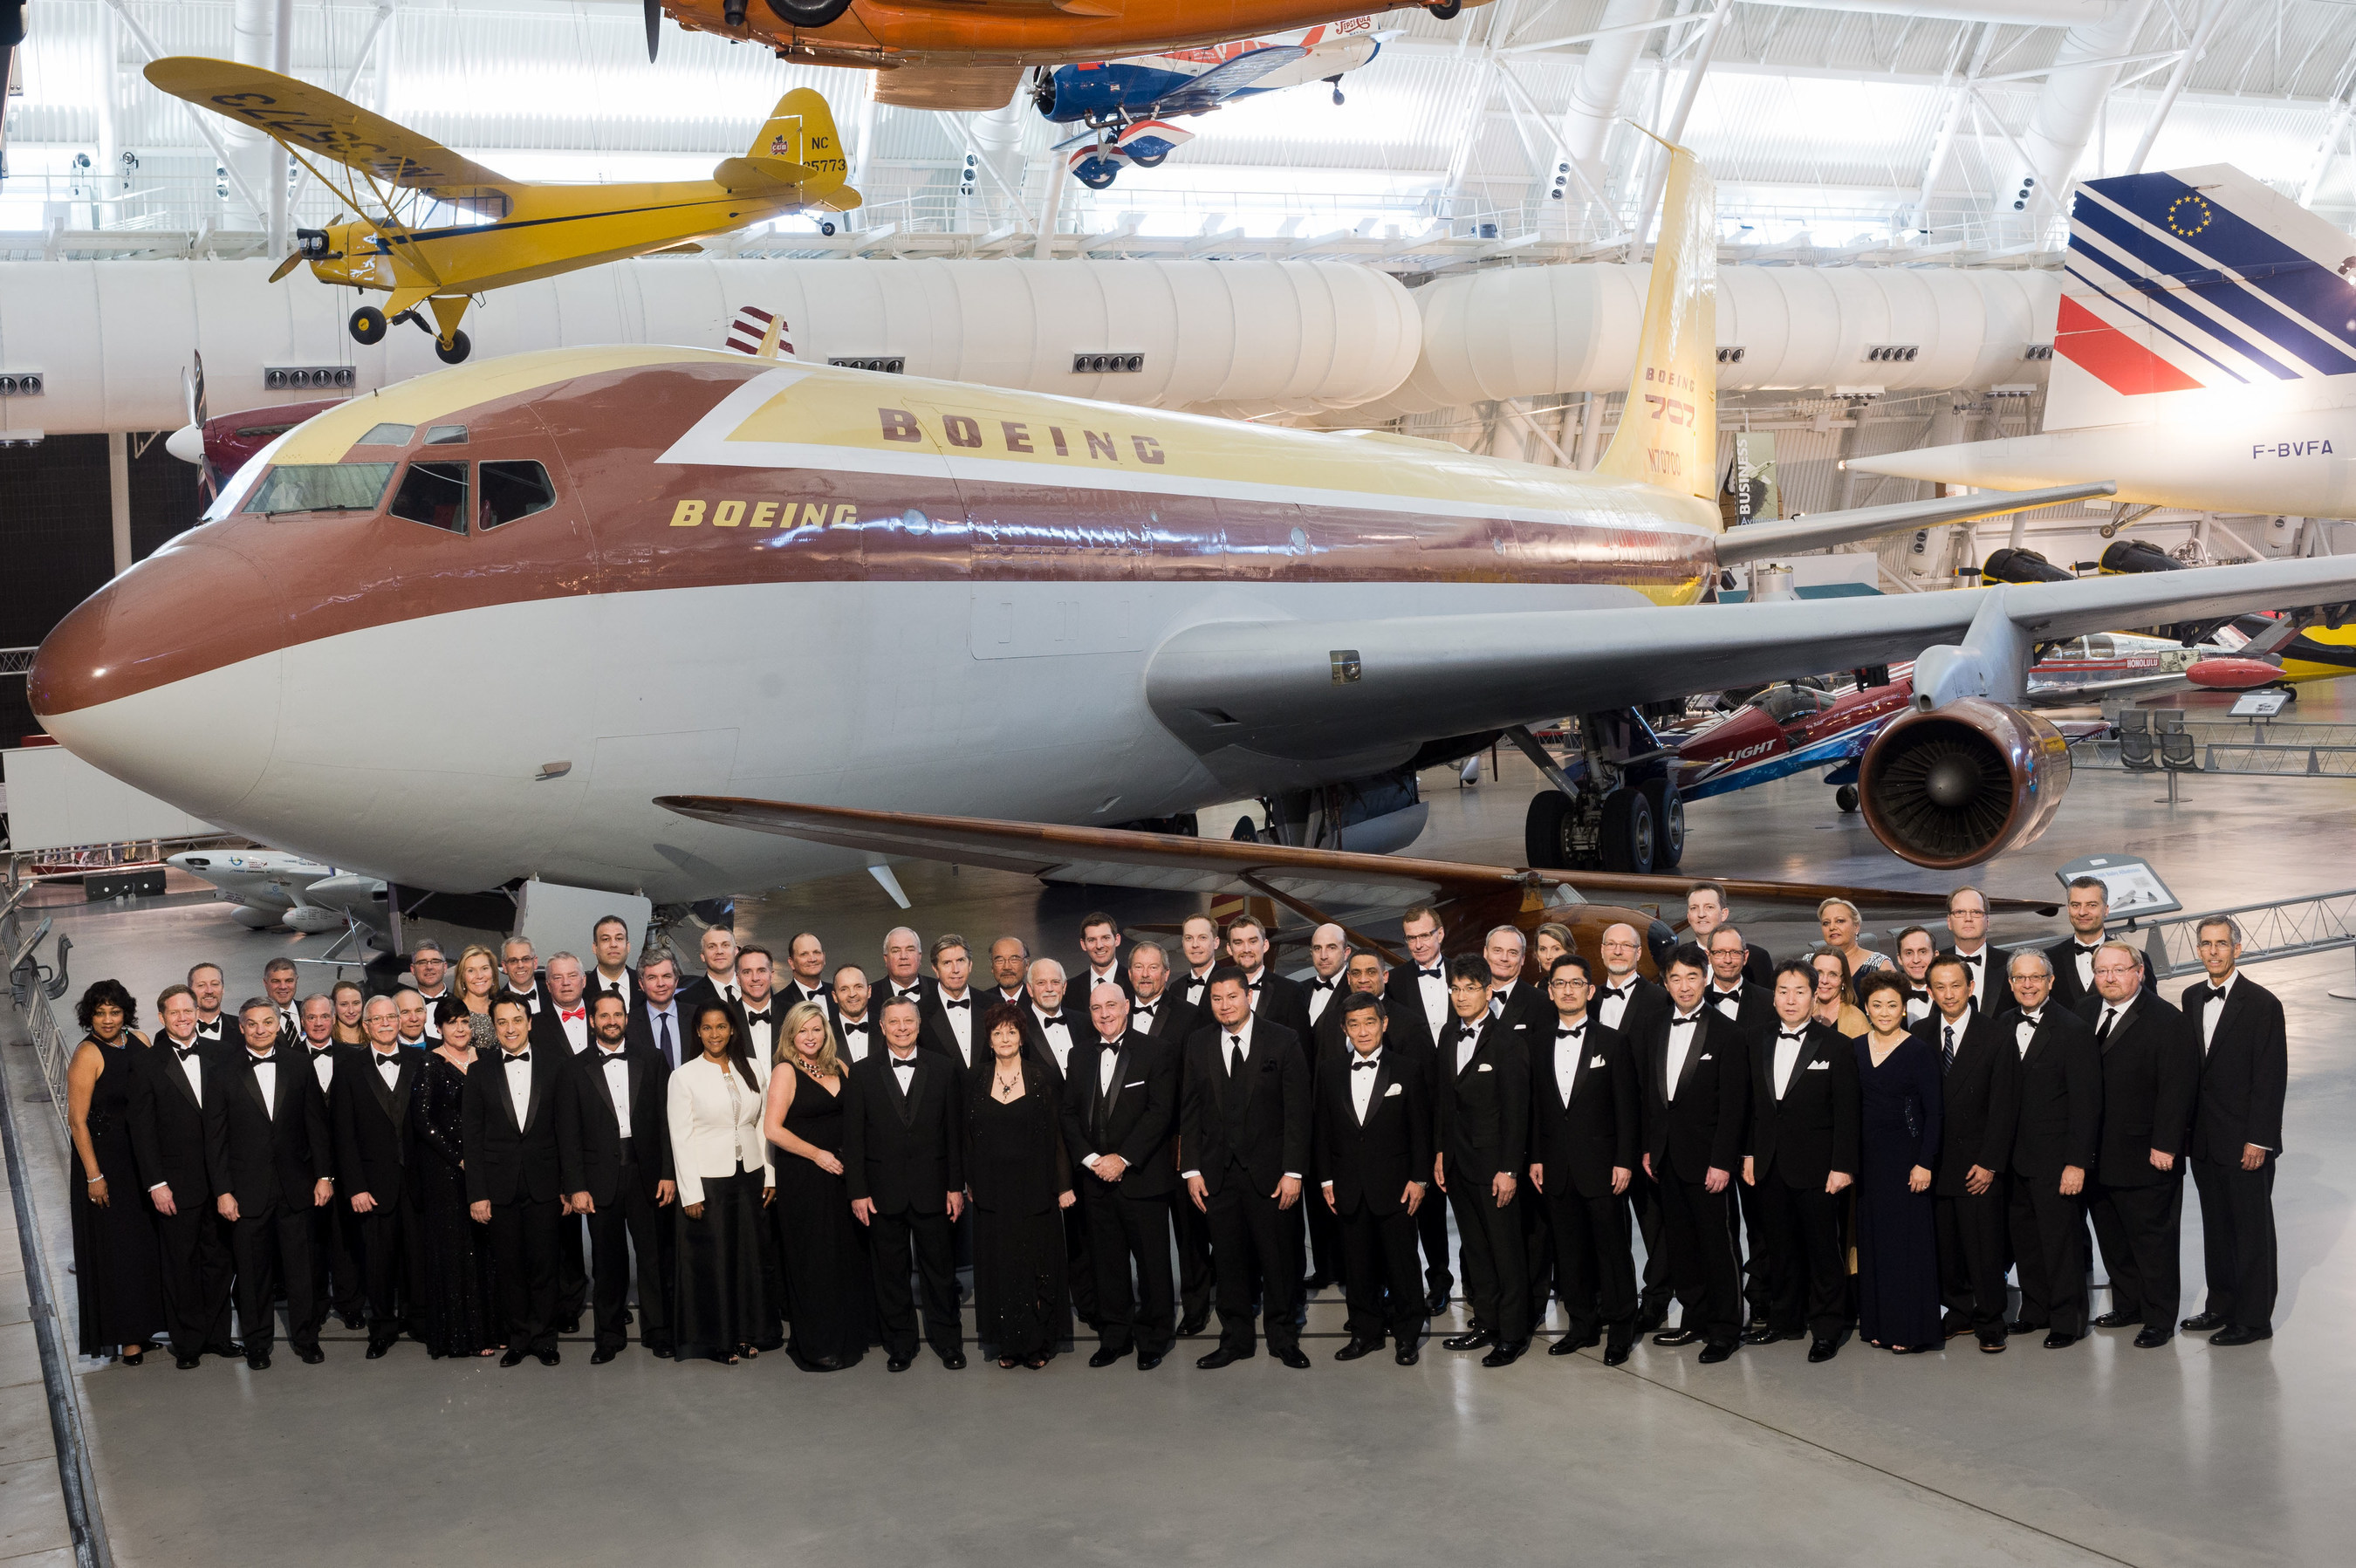 Michelin Honored as One of Boeing's Suppliers of the Year